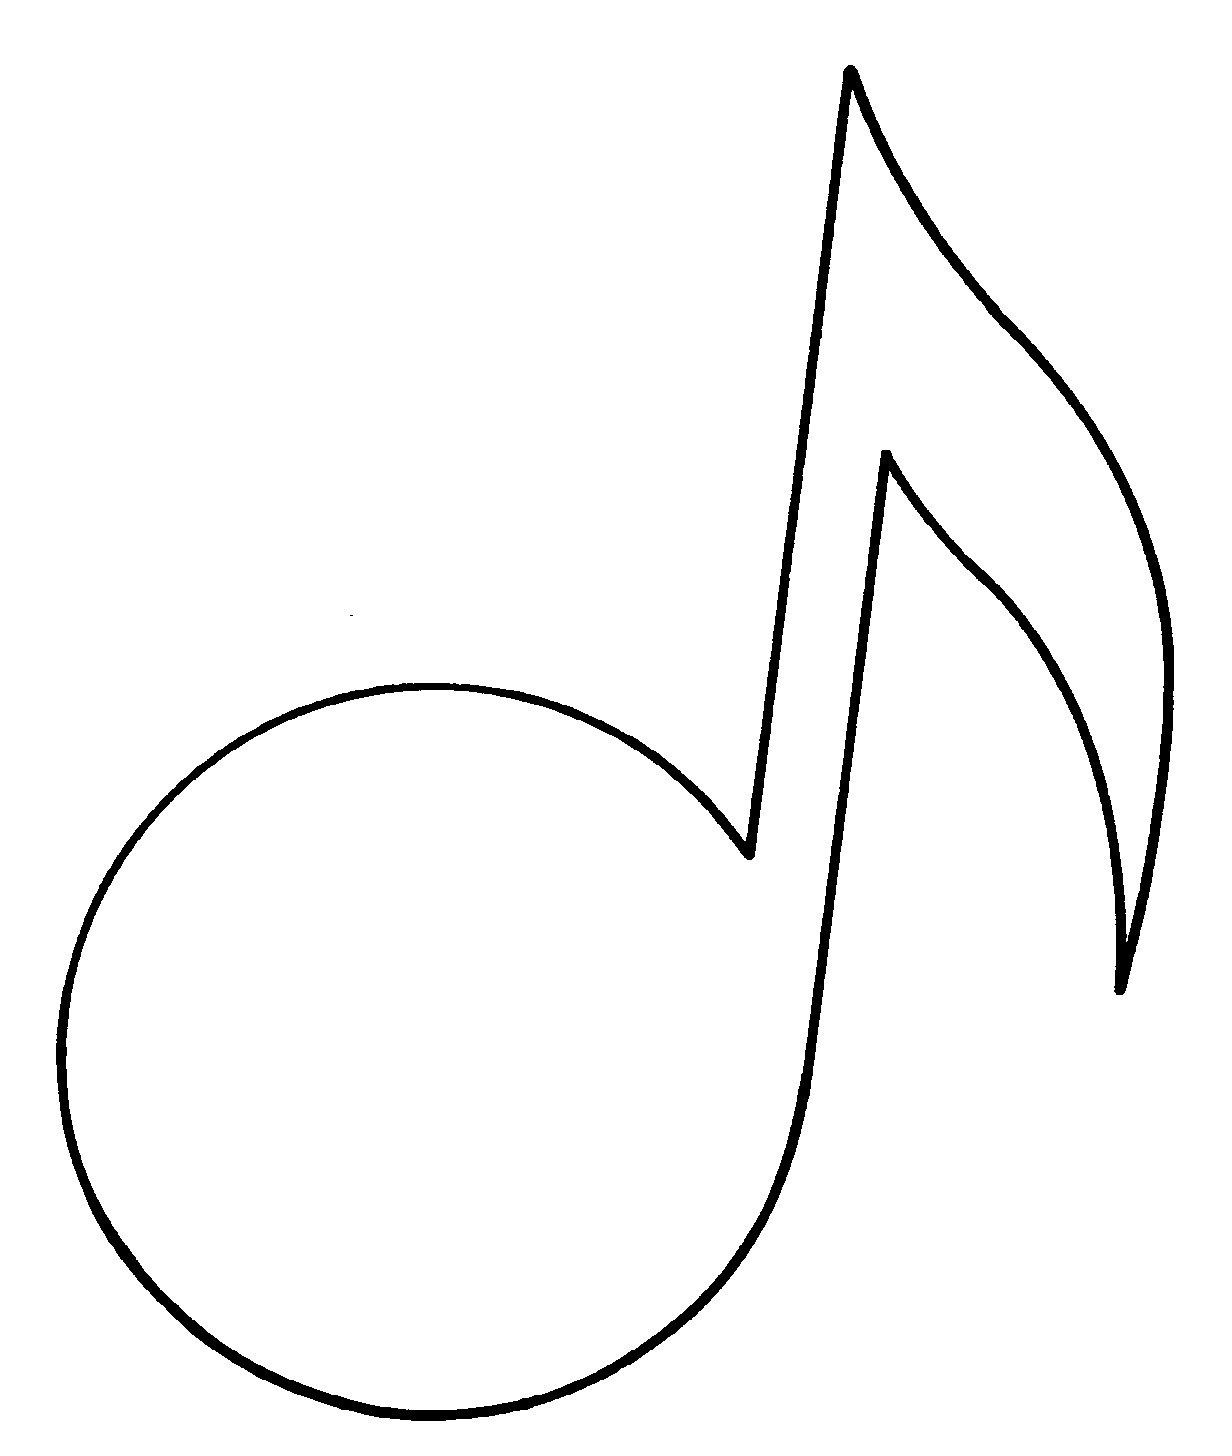 Printable Music Notes | Free Download Best Printable Music Notes On - Free Printable Music Notes Templates